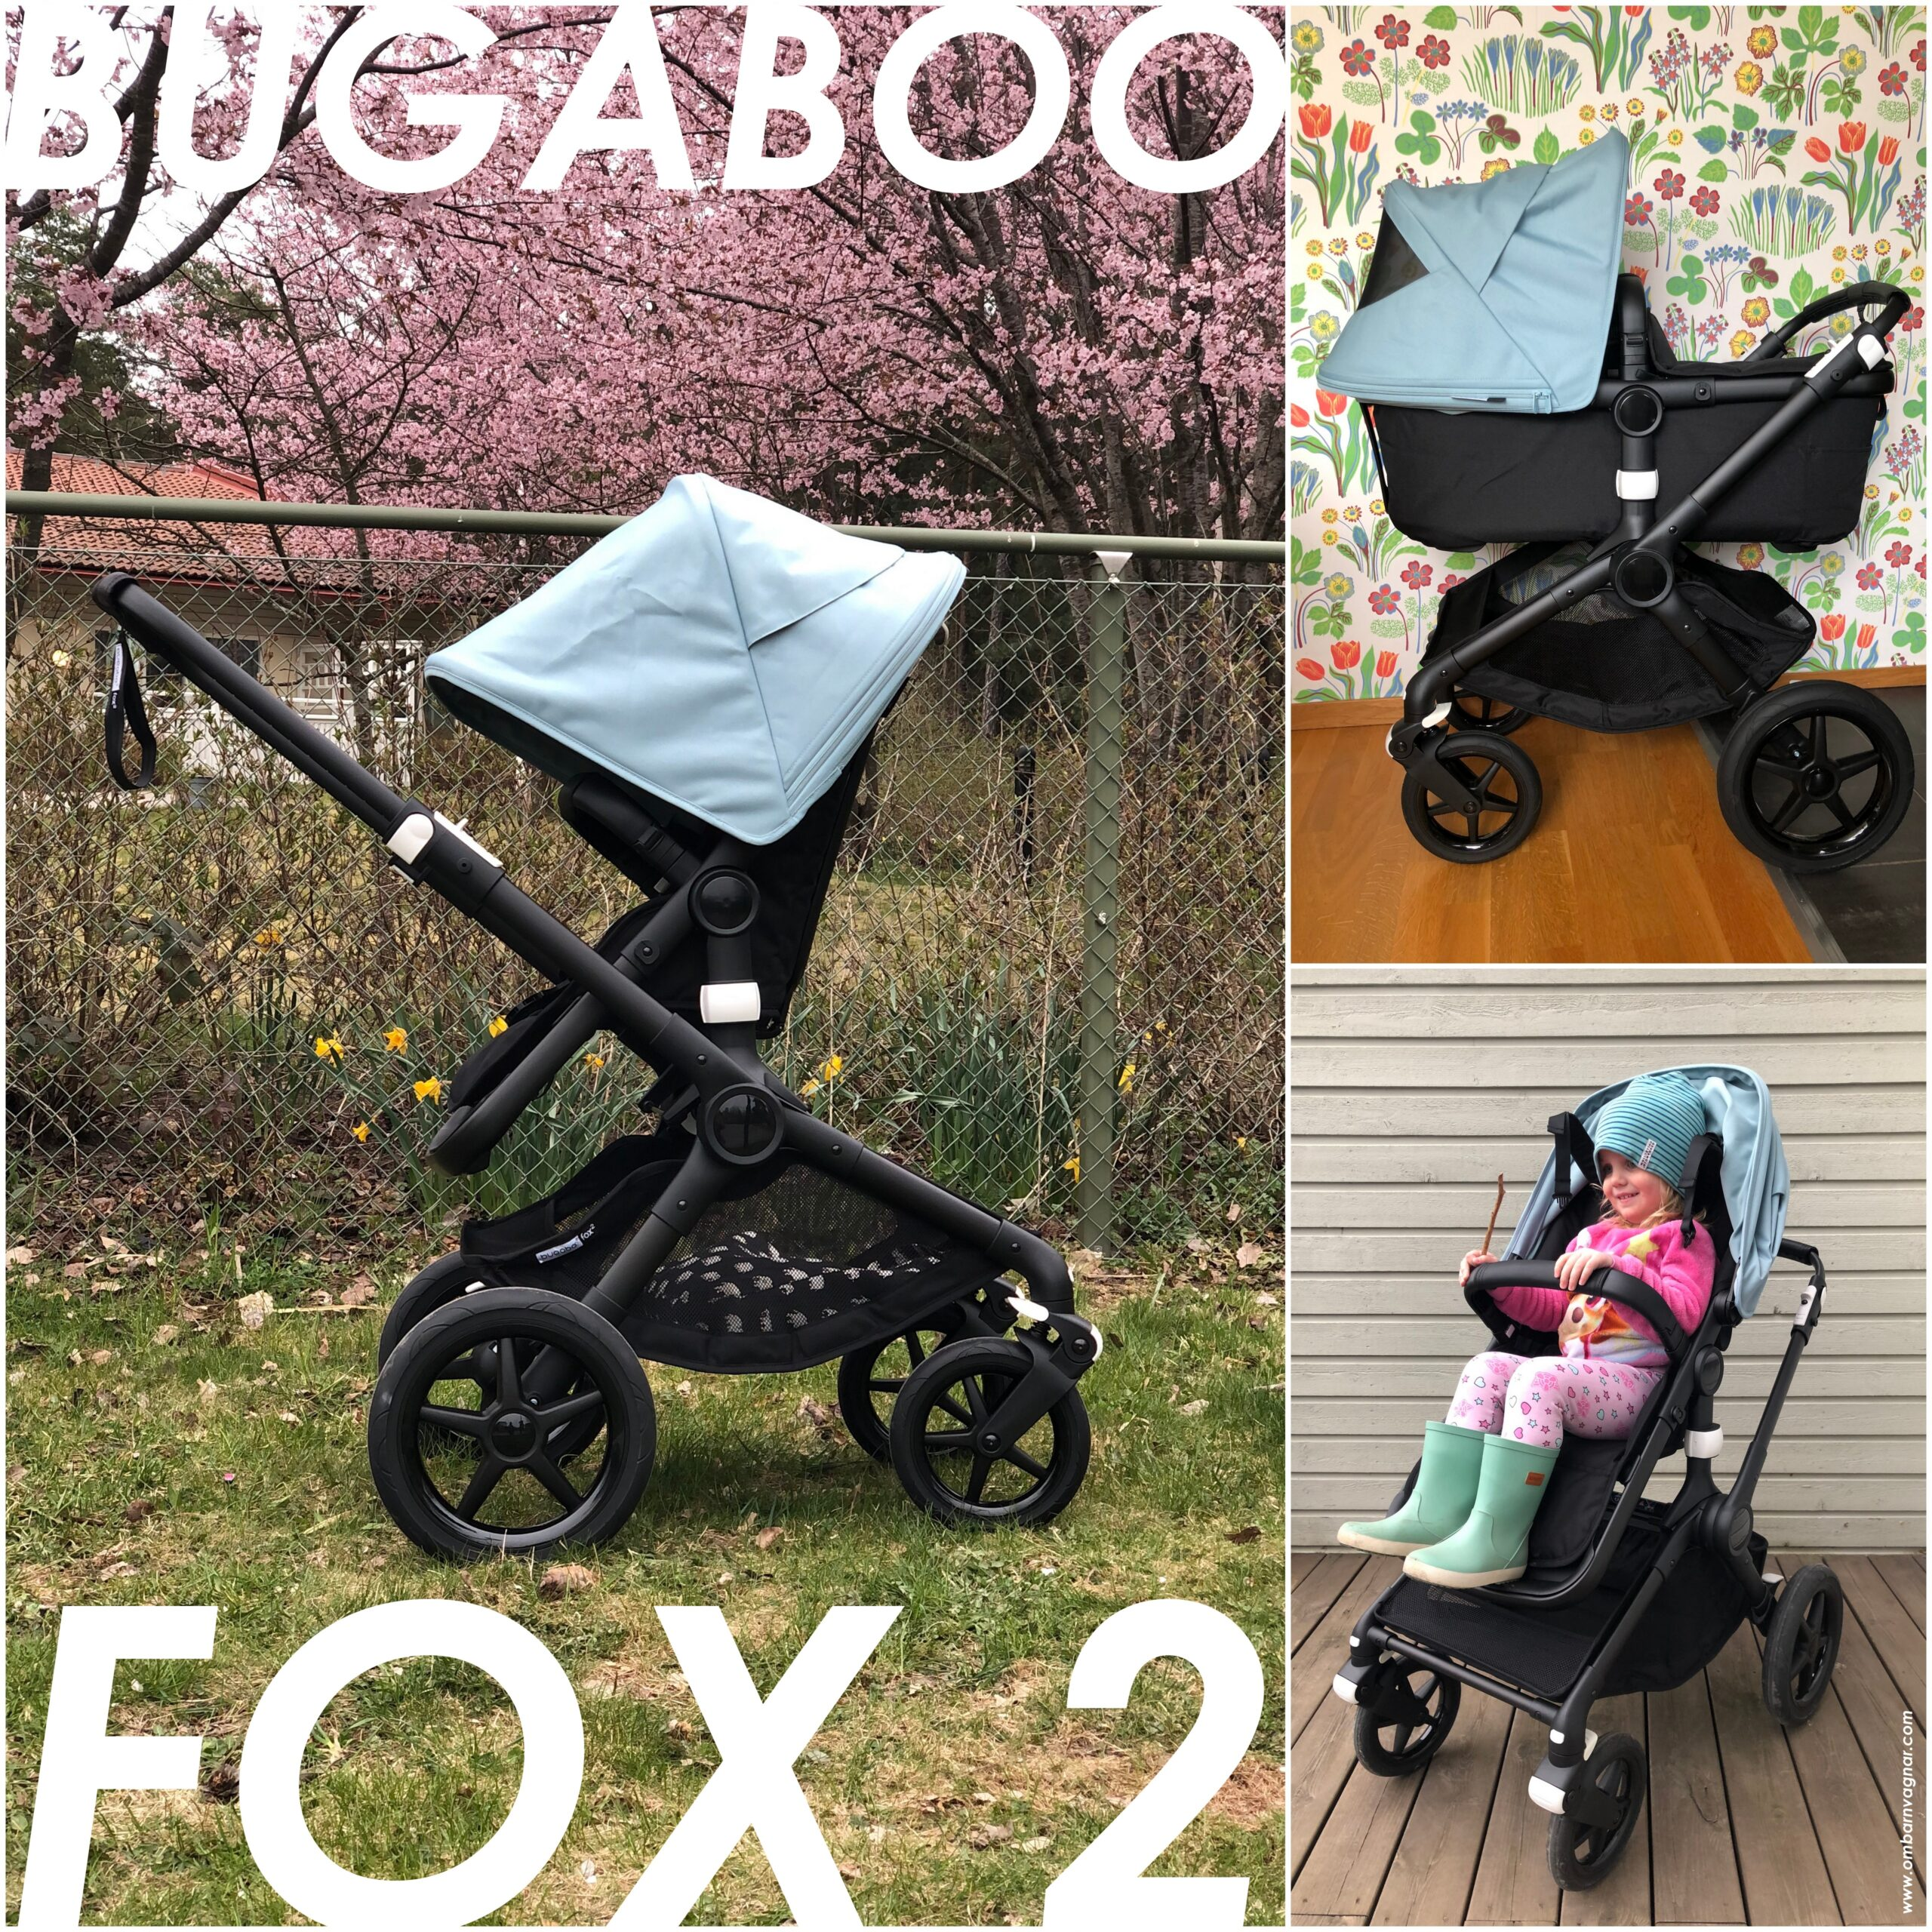 Recension av Bugaboo Fox 2